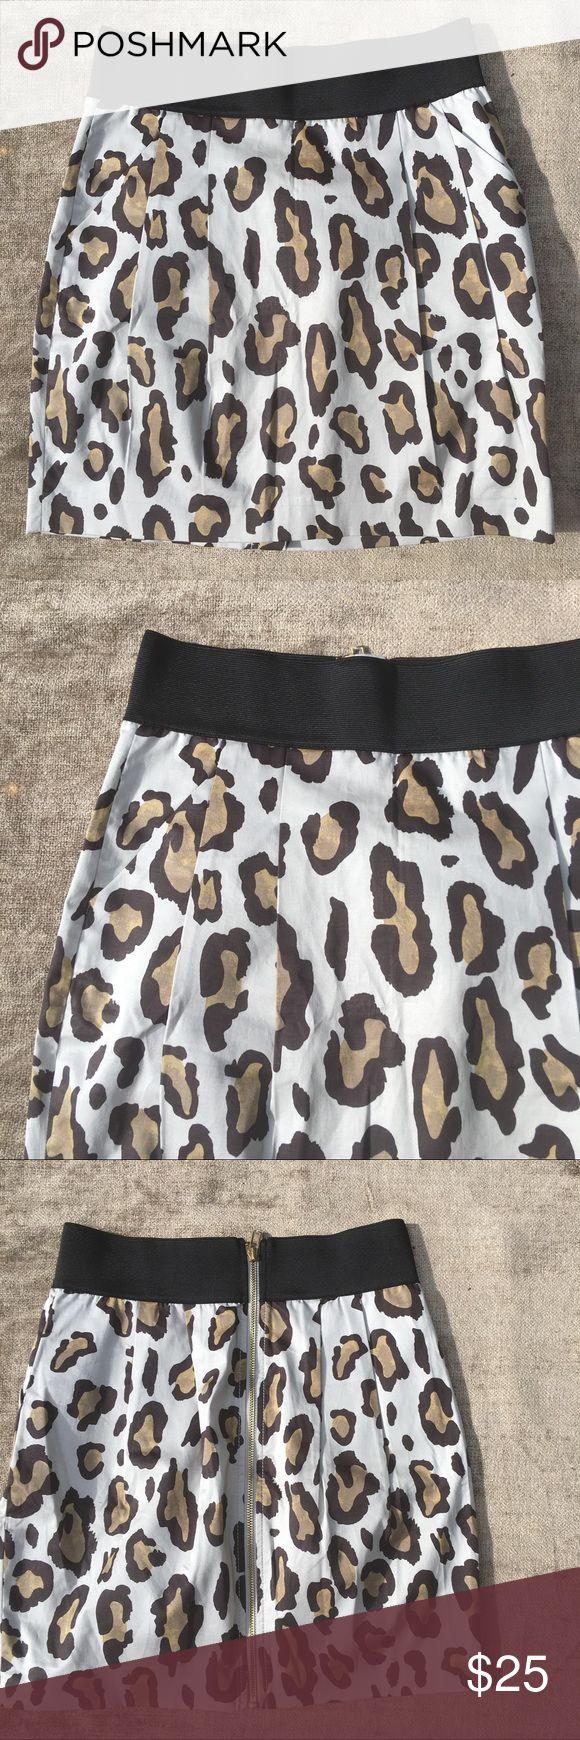 NEW! Armani Exchange pleated animal print skirt 4 Armani exchange animal print (cheetah) cotton skirt. Beautiful pleating in front. Has functioning pockets.  Elastic waistband. New never worn. I have the tags somewhere! Waist 13.5 with a lot of stretch. Hip 18 inches total long 17. Pristine. Size 4 A/X Armani Exchange Skirts Mini